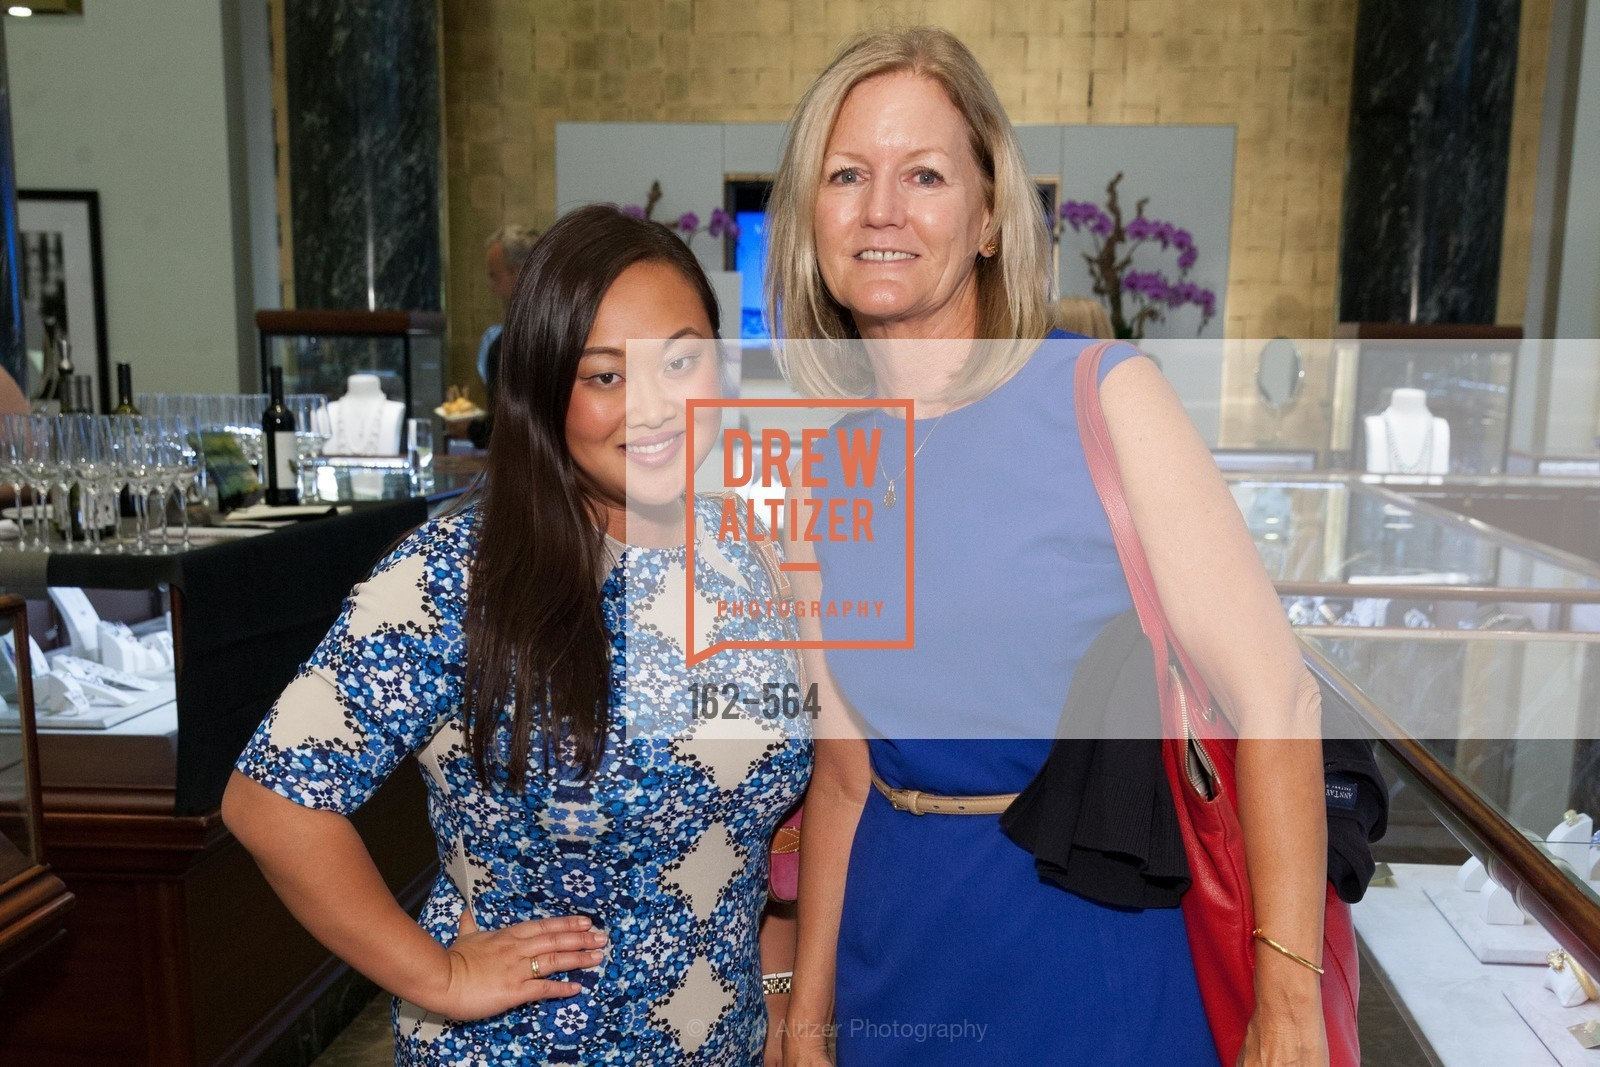 Wendy Cruz, Erin McGlynn, SHREVE & CO. Hosts AMERICAN CANCER SOCIETY BENEFIT, US, September 10th, 2014,Drew Altizer, Drew Altizer Photography, full-service event agency, private events, San Francisco photographer, photographer California